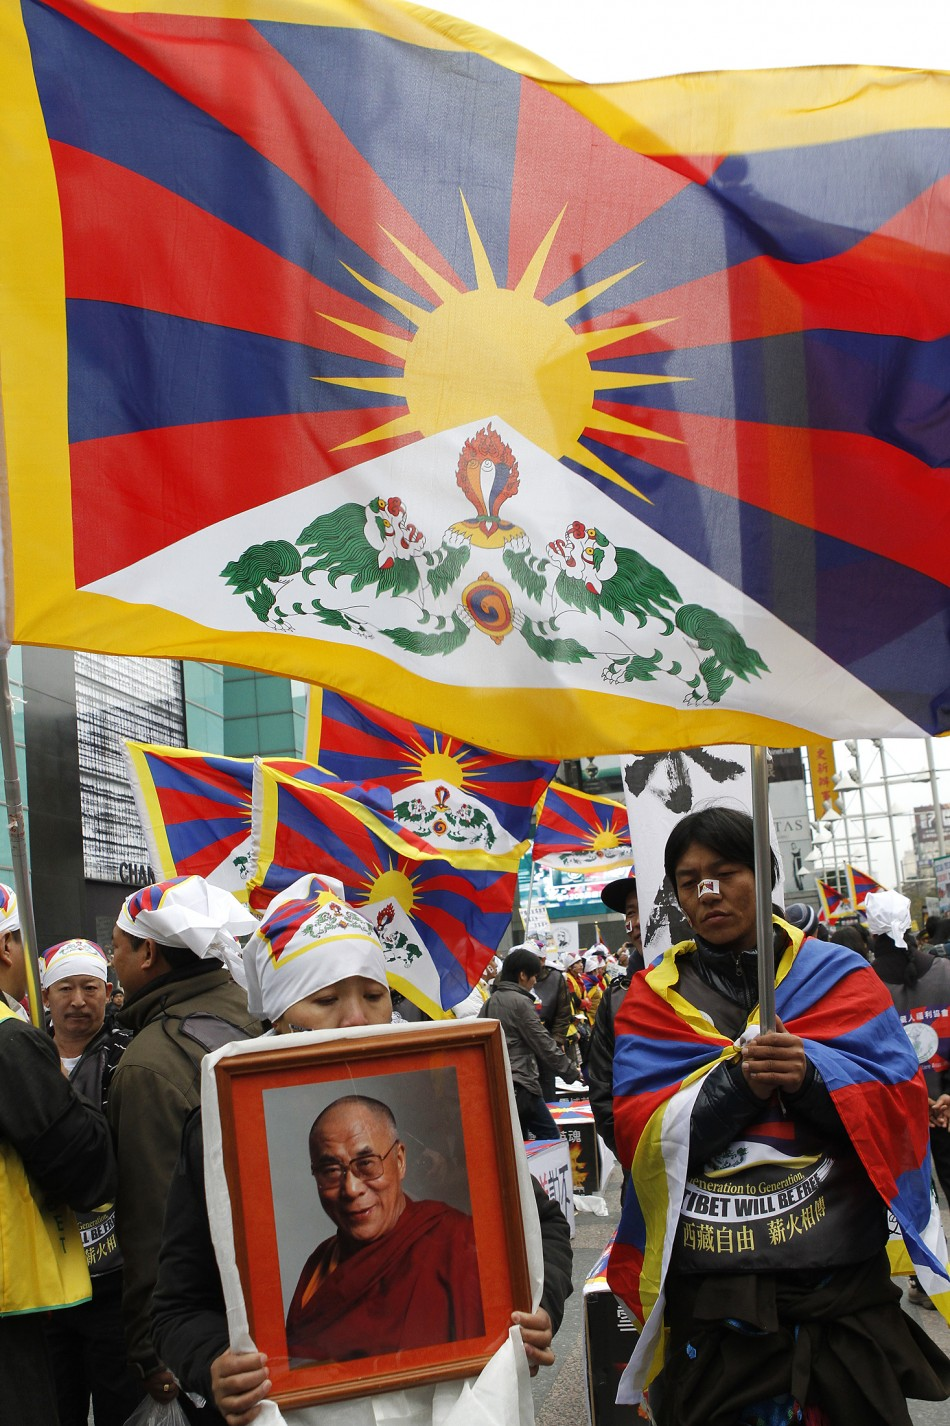 Activists holding a picture of the Dalai Lama and the Tibetan flags take part in a rally to support Tibet in Taipei